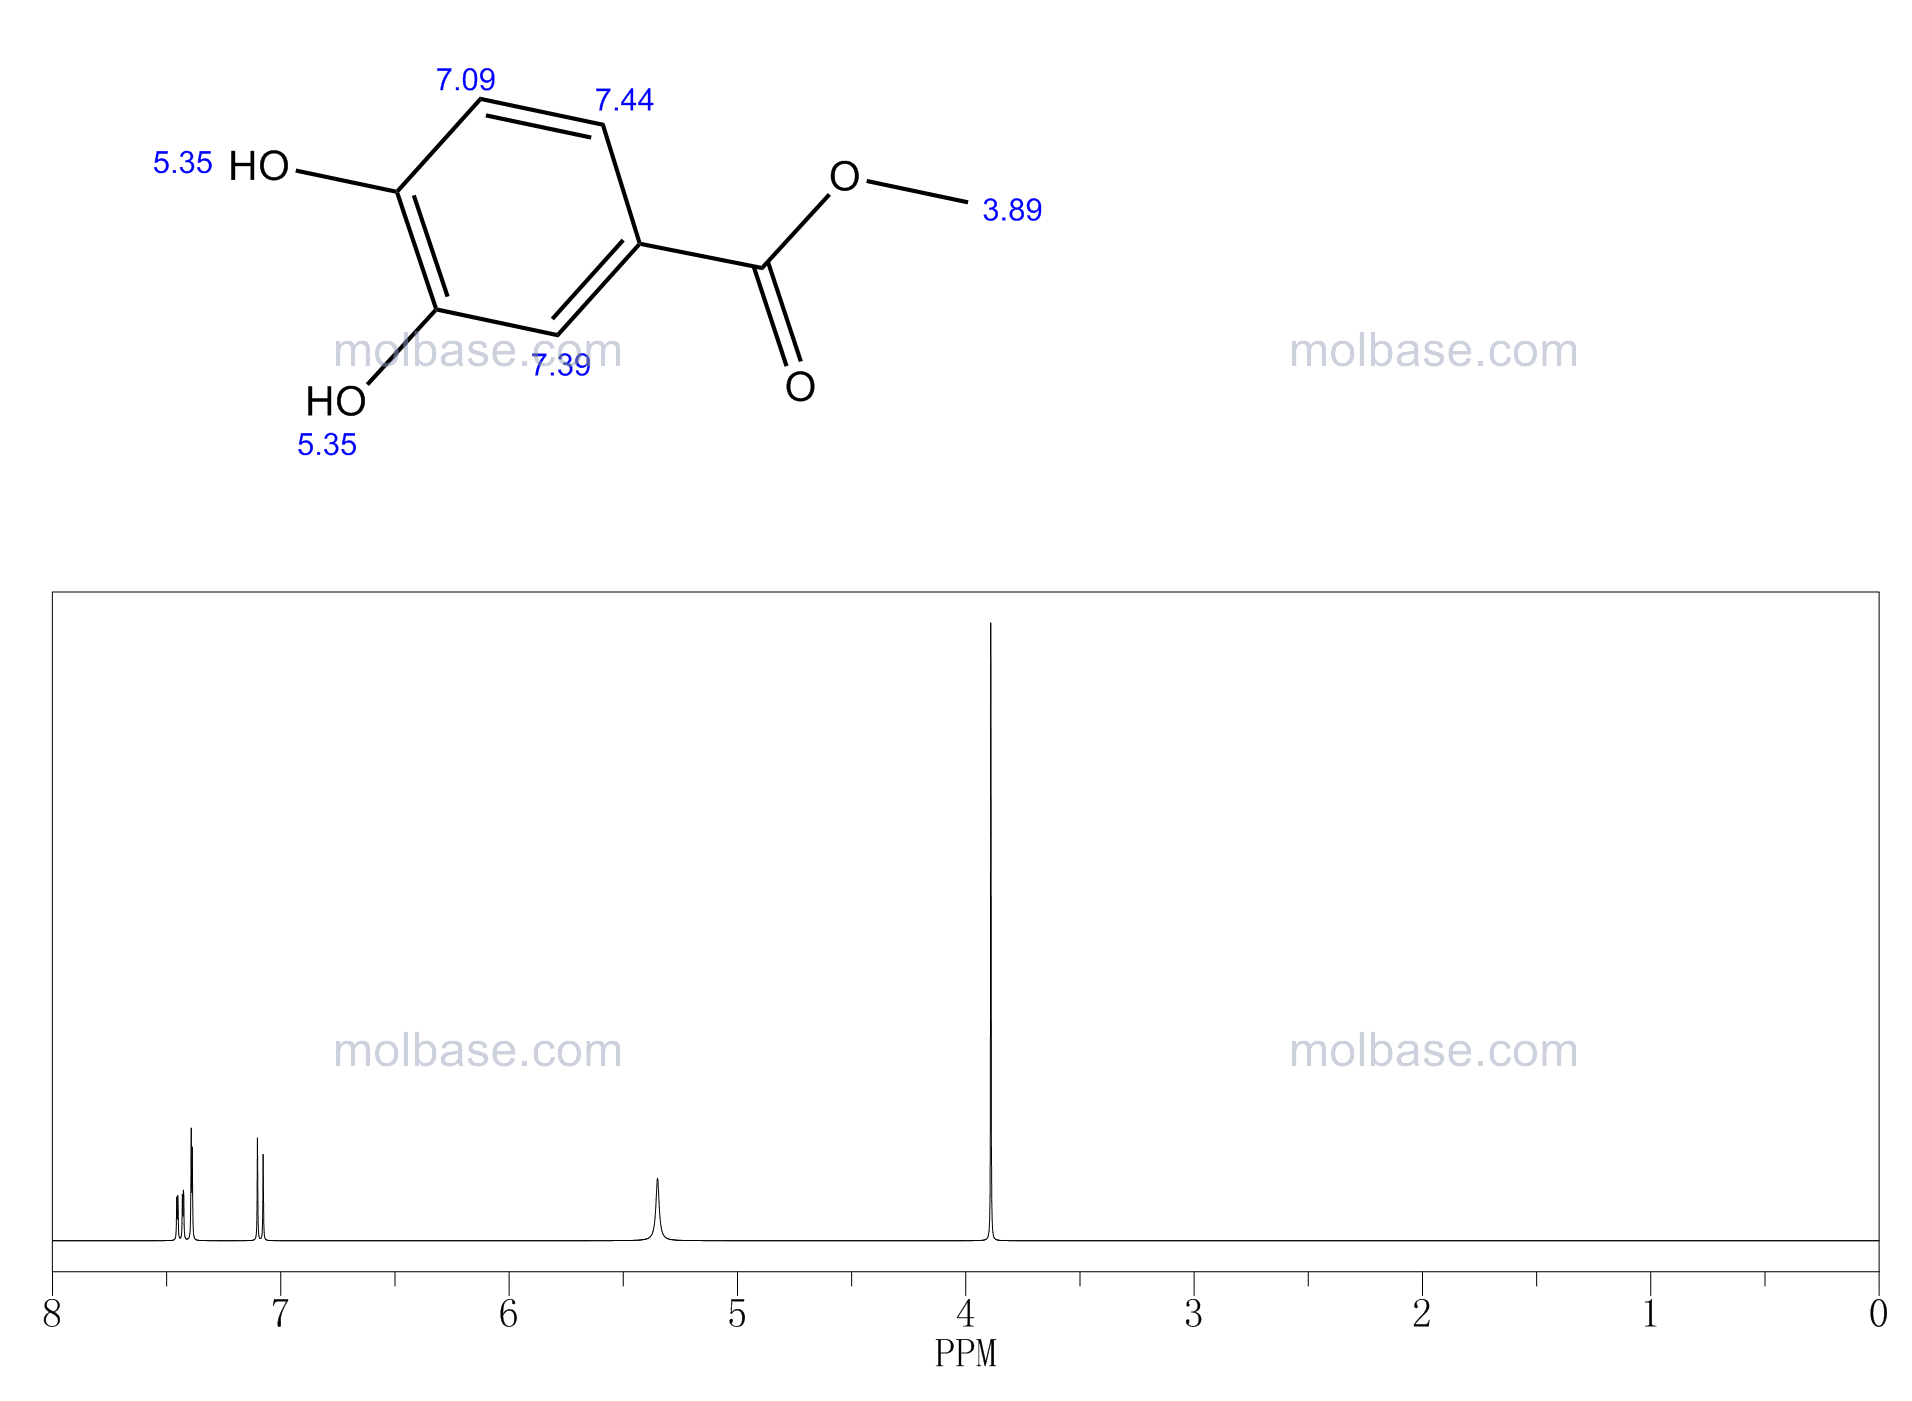 Methyl 3,4-dihydroxybenzoate NMR spectra analysis, Chemical CAS NO. 2150-43-8 NMR spectral analysis, Methyl 3,4-dihydroxybenzoate C-NMR spectrum